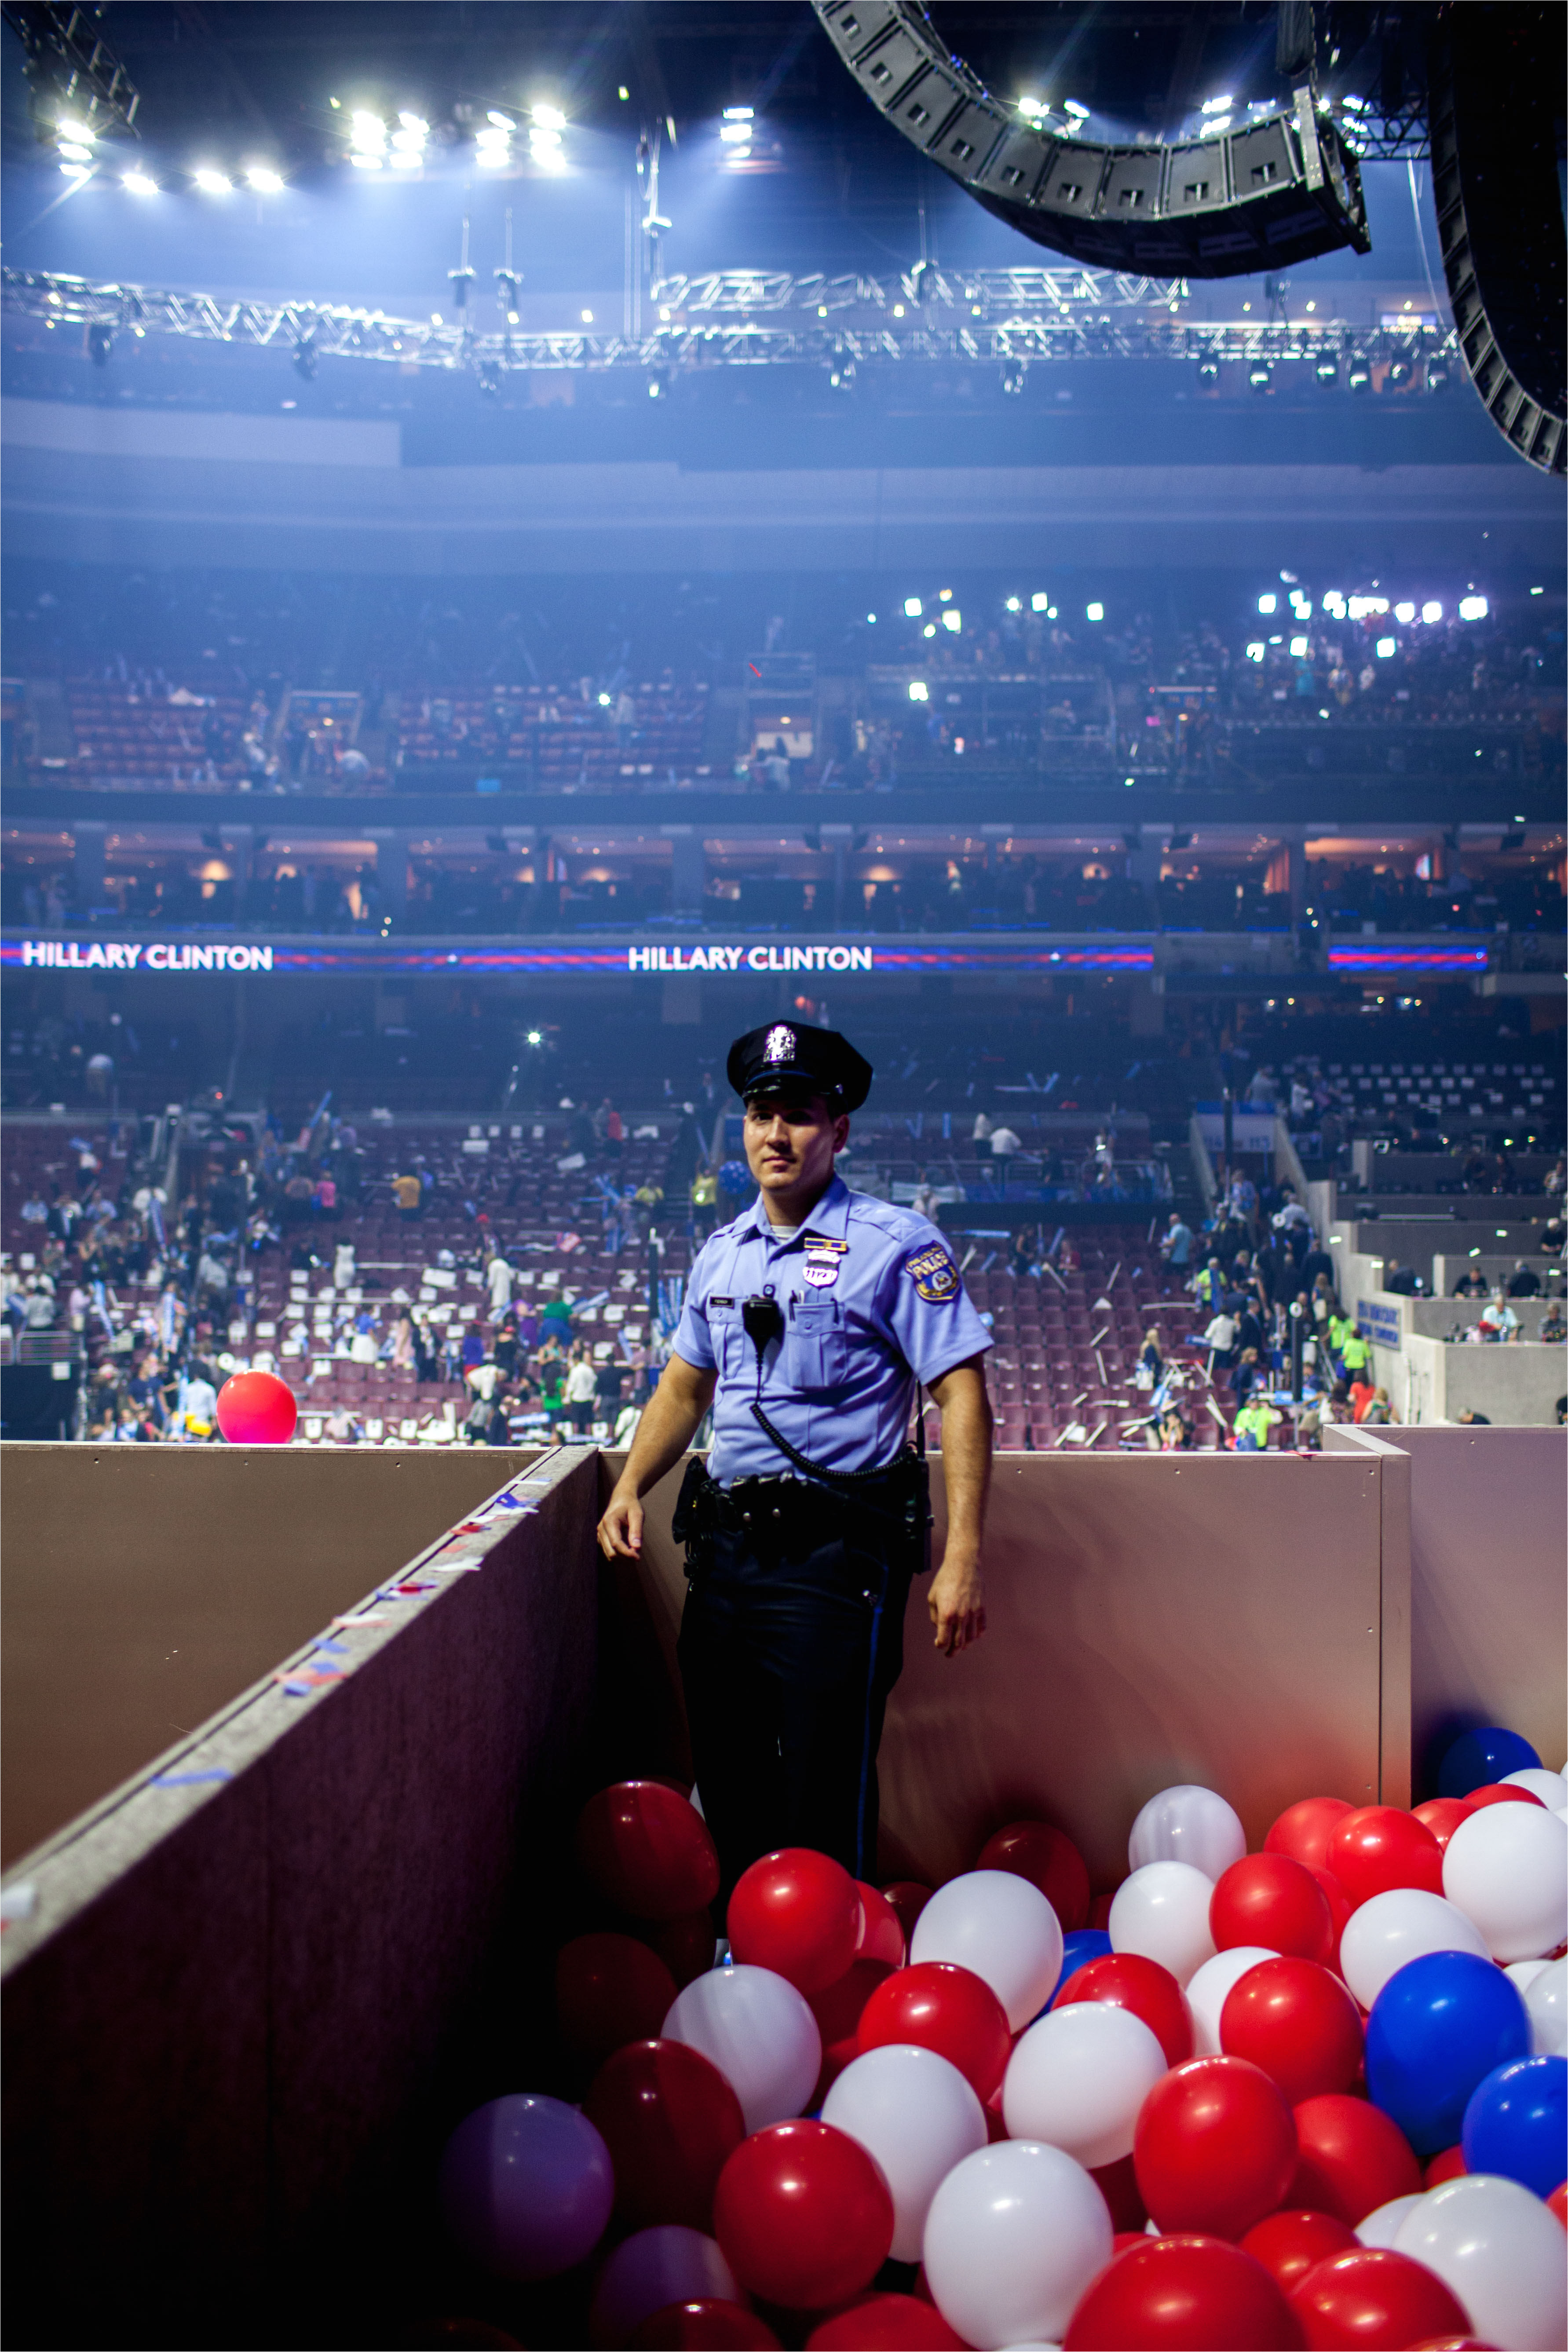 security backstage on the fourth day of the democratic national convention at the wells fargo center